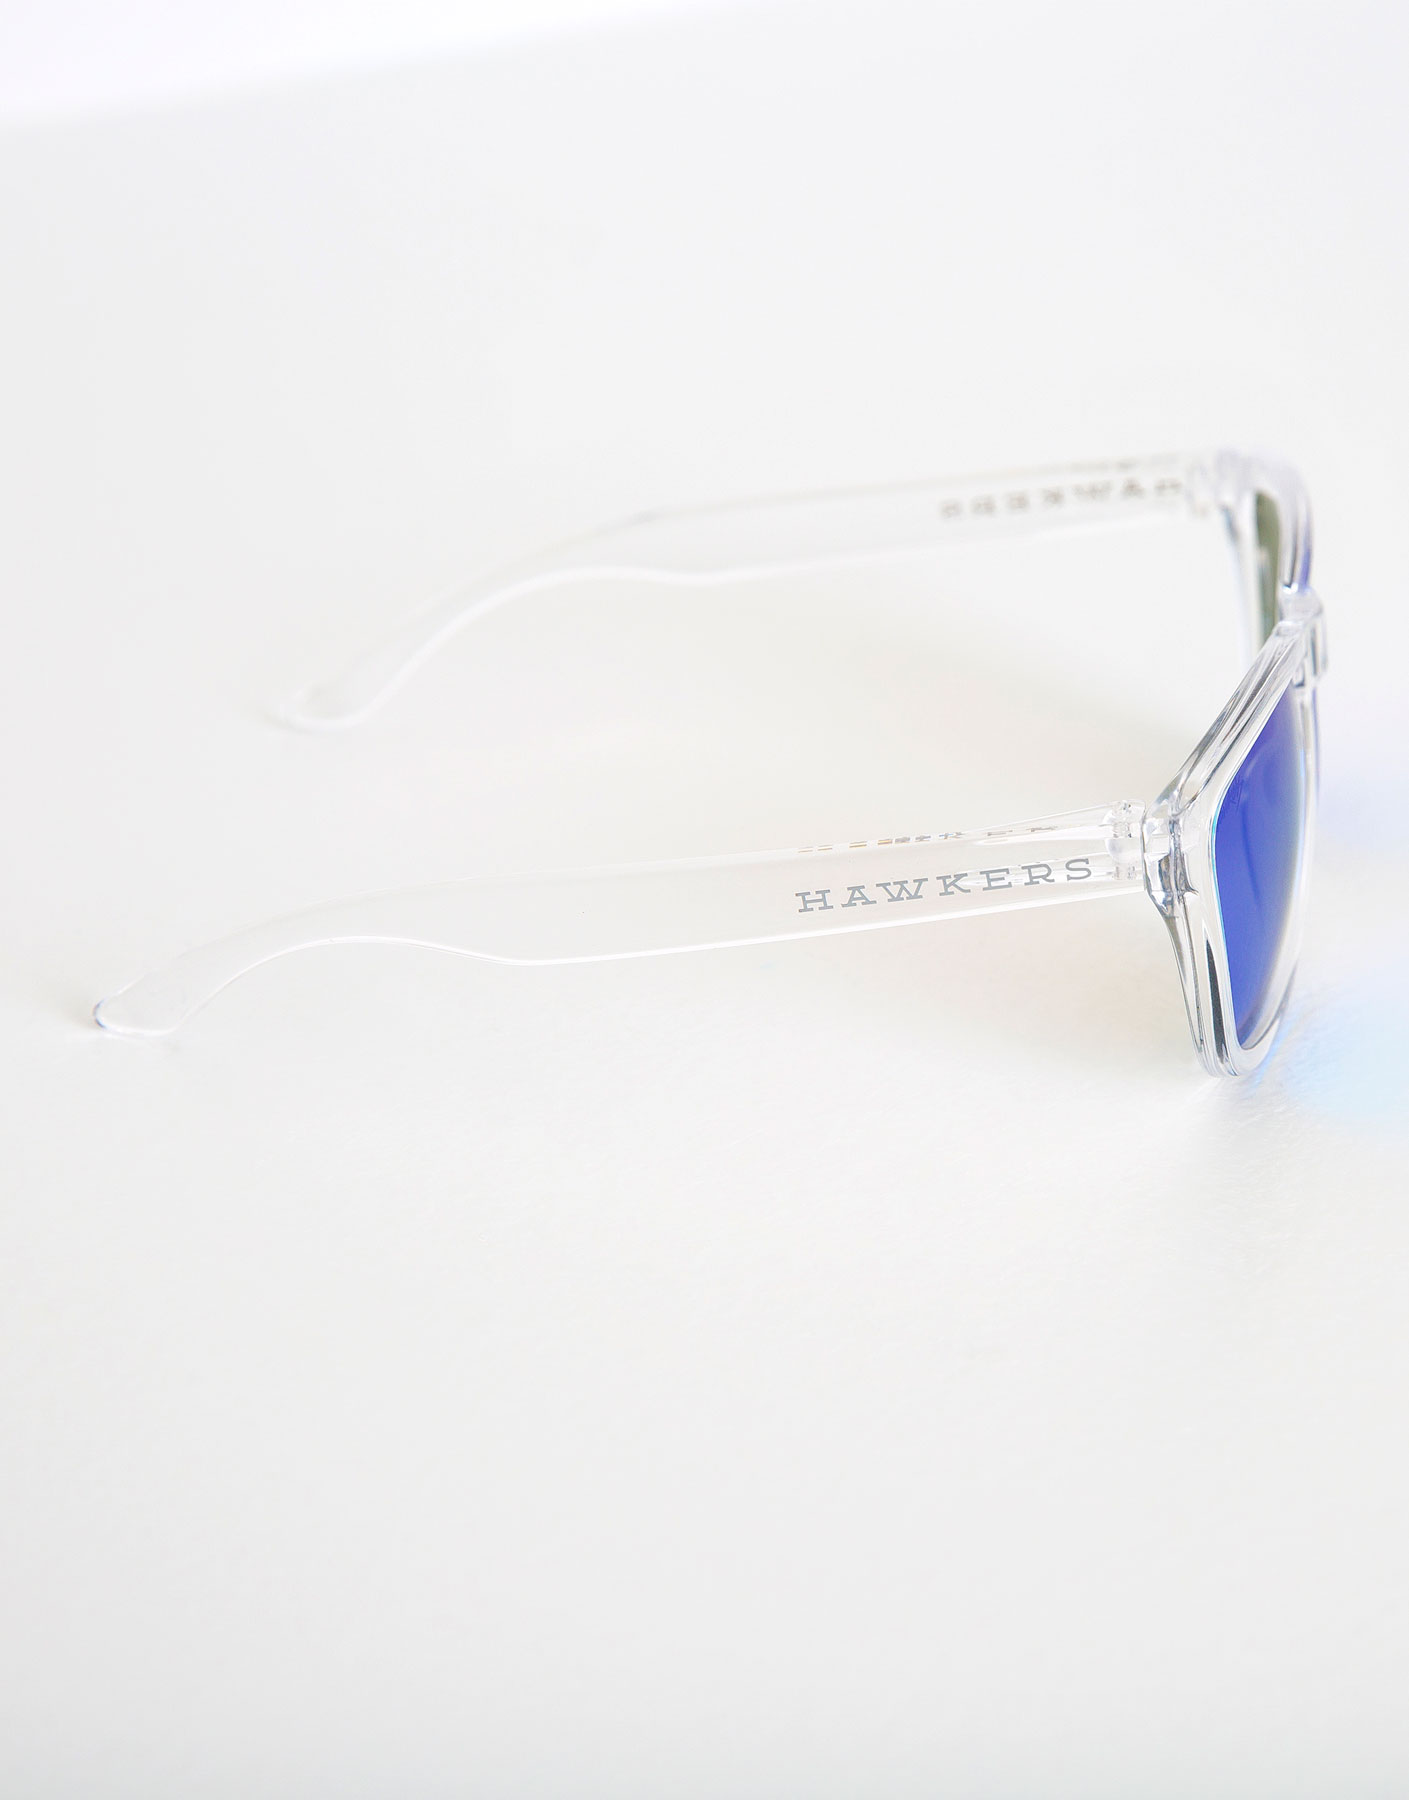 Gafas de sol hawkers air clear blue one